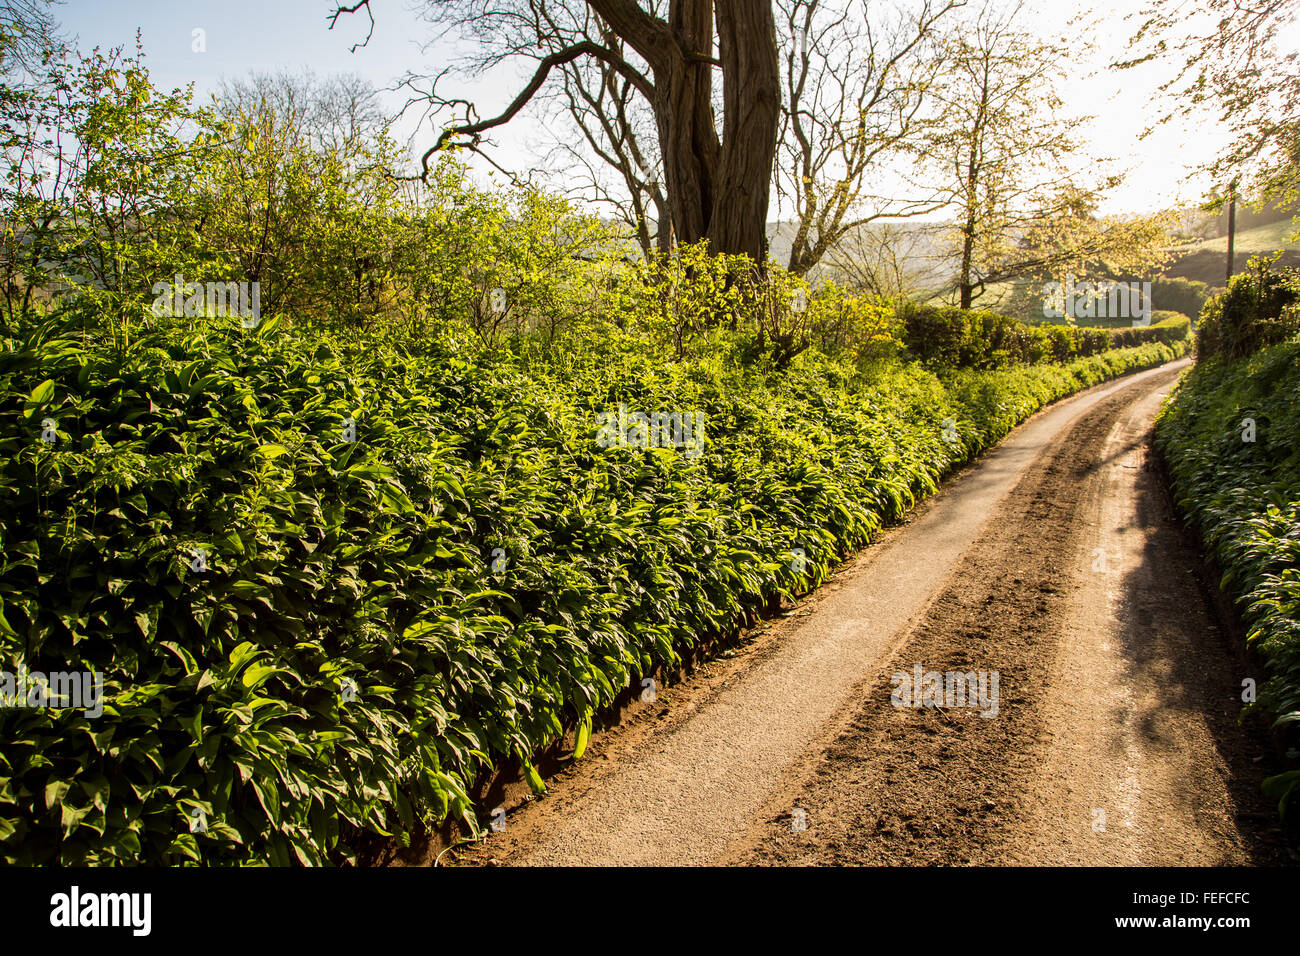 Wild Garlic (Allium ursinum) growing in abundance beneath a hedegerow alongside a country lane in Wiltshire UK - Stock Image